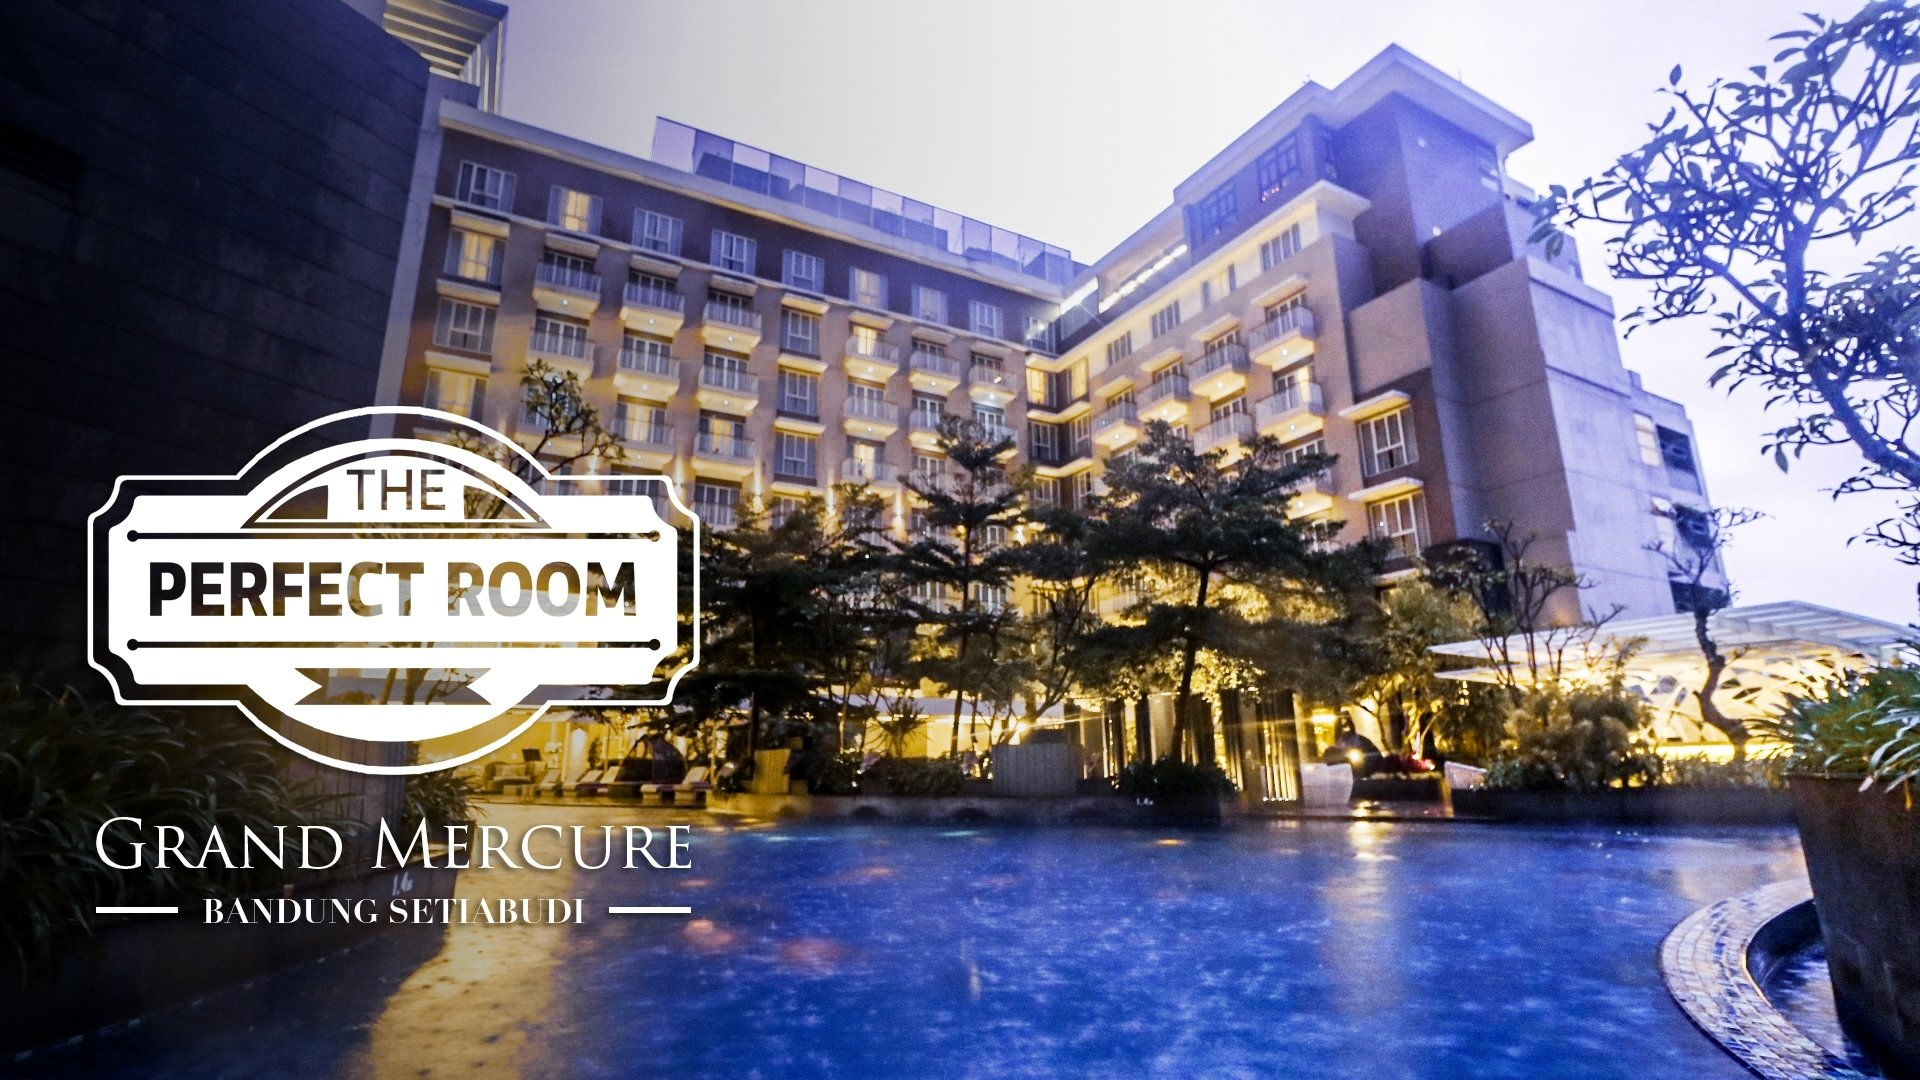 Perfect Room at Grand Mercure Bandung Setiabudi [Hotel Review] https://t.co/dOZjg4Dw54 #PERFECTROOM @infobdgTV https://t.co/AETcNL129b